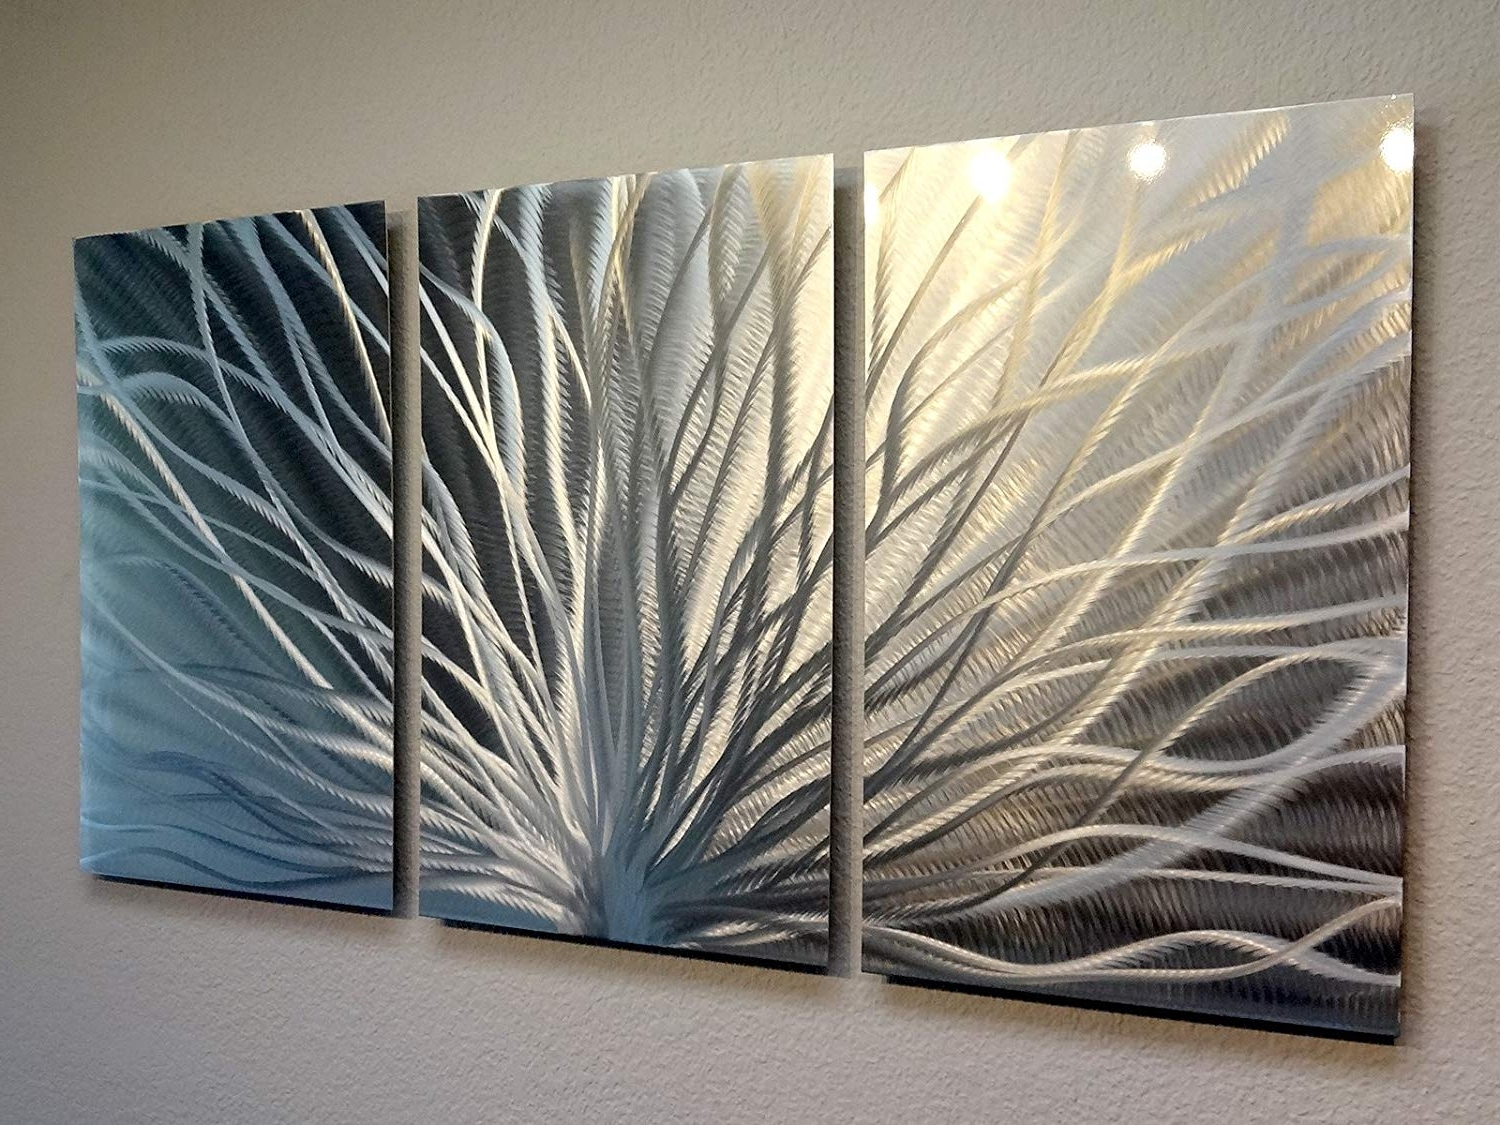 Recent Metal Wall Art Panels Pertaining To Amazon: Miles Shay Metal Wall Art, Modern Home Decor, Abstract (View 15 of 15)